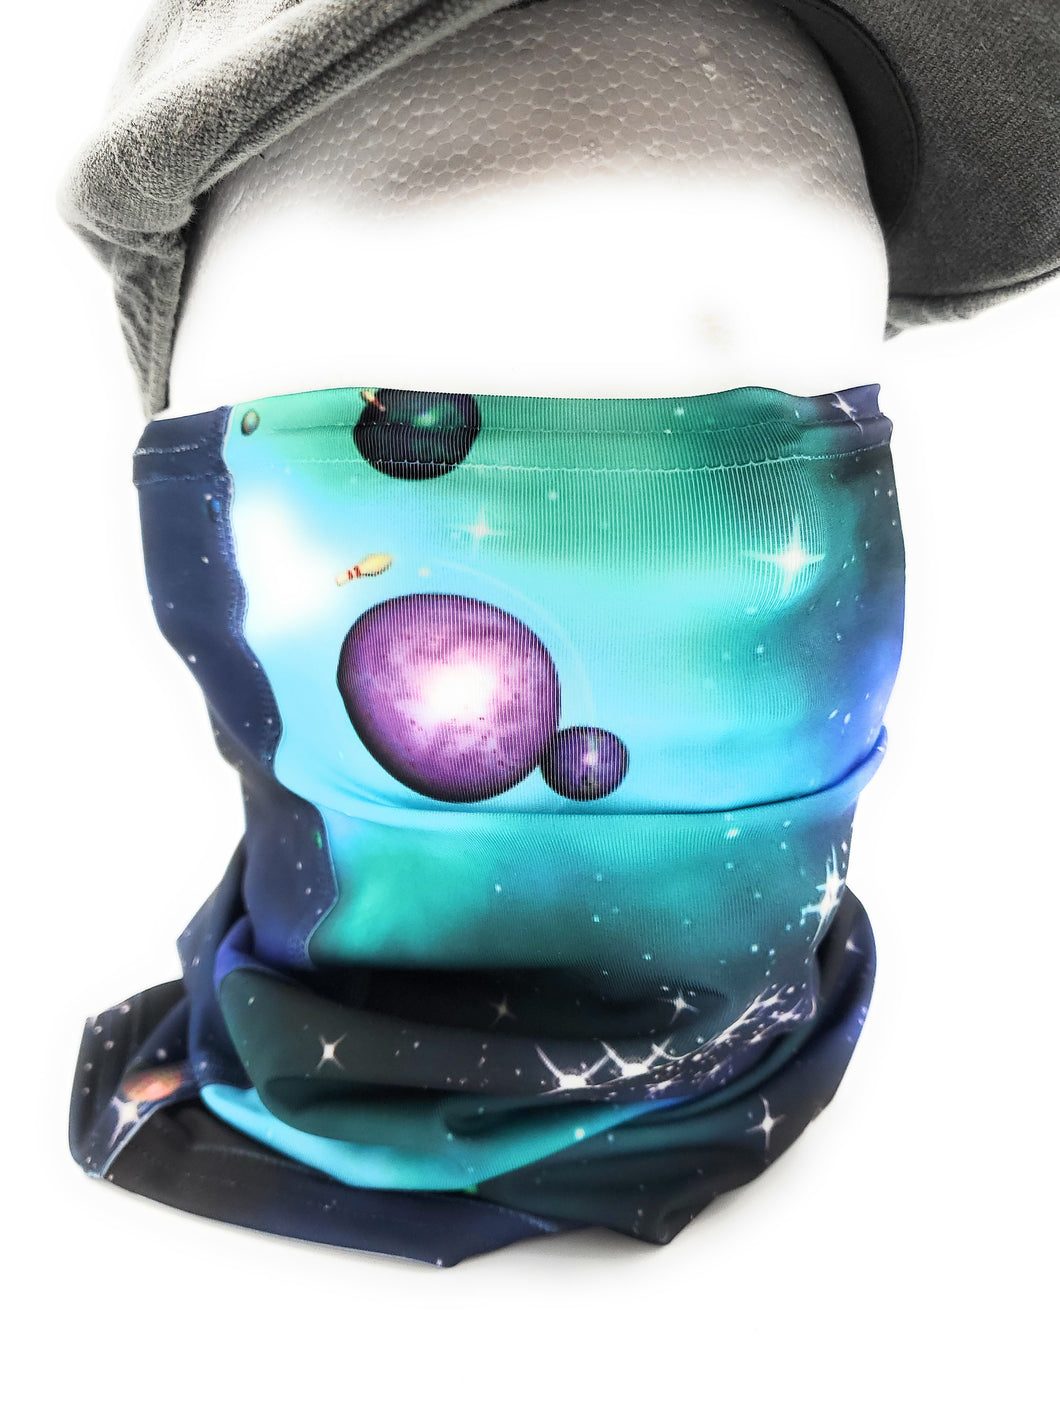 Neck Gaiter, Space Bowling Theme, Comfortable Face Cover, Breathable, Can be Personalization Optional - Full or Half Size Available